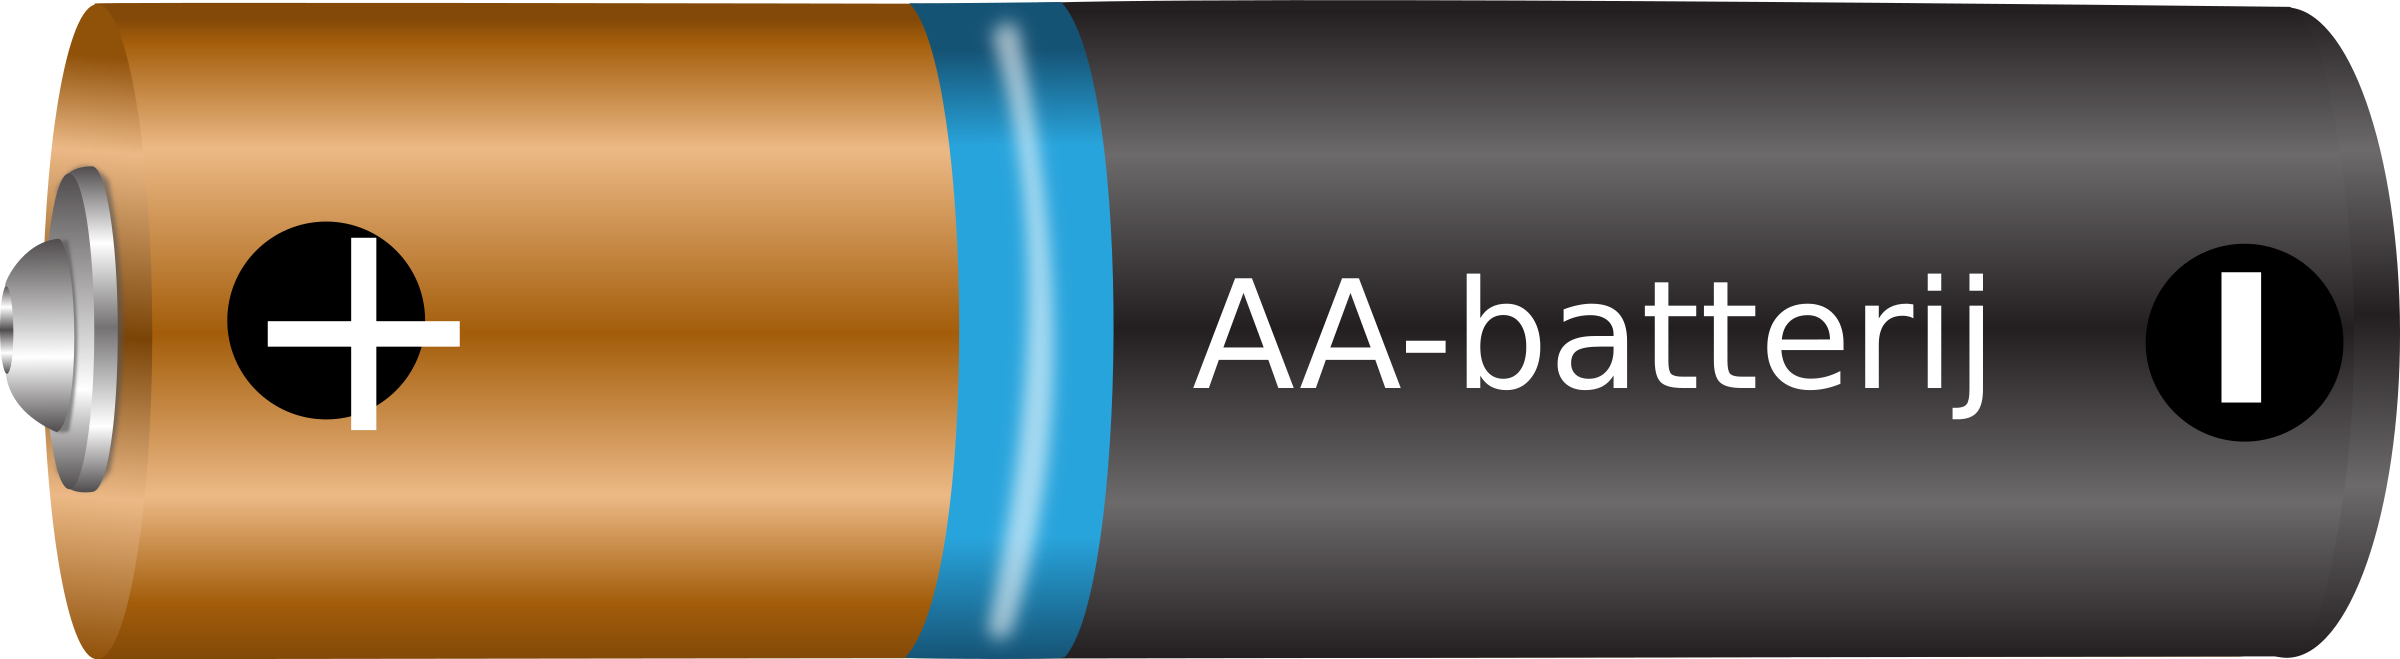 AA-battery by Iyo